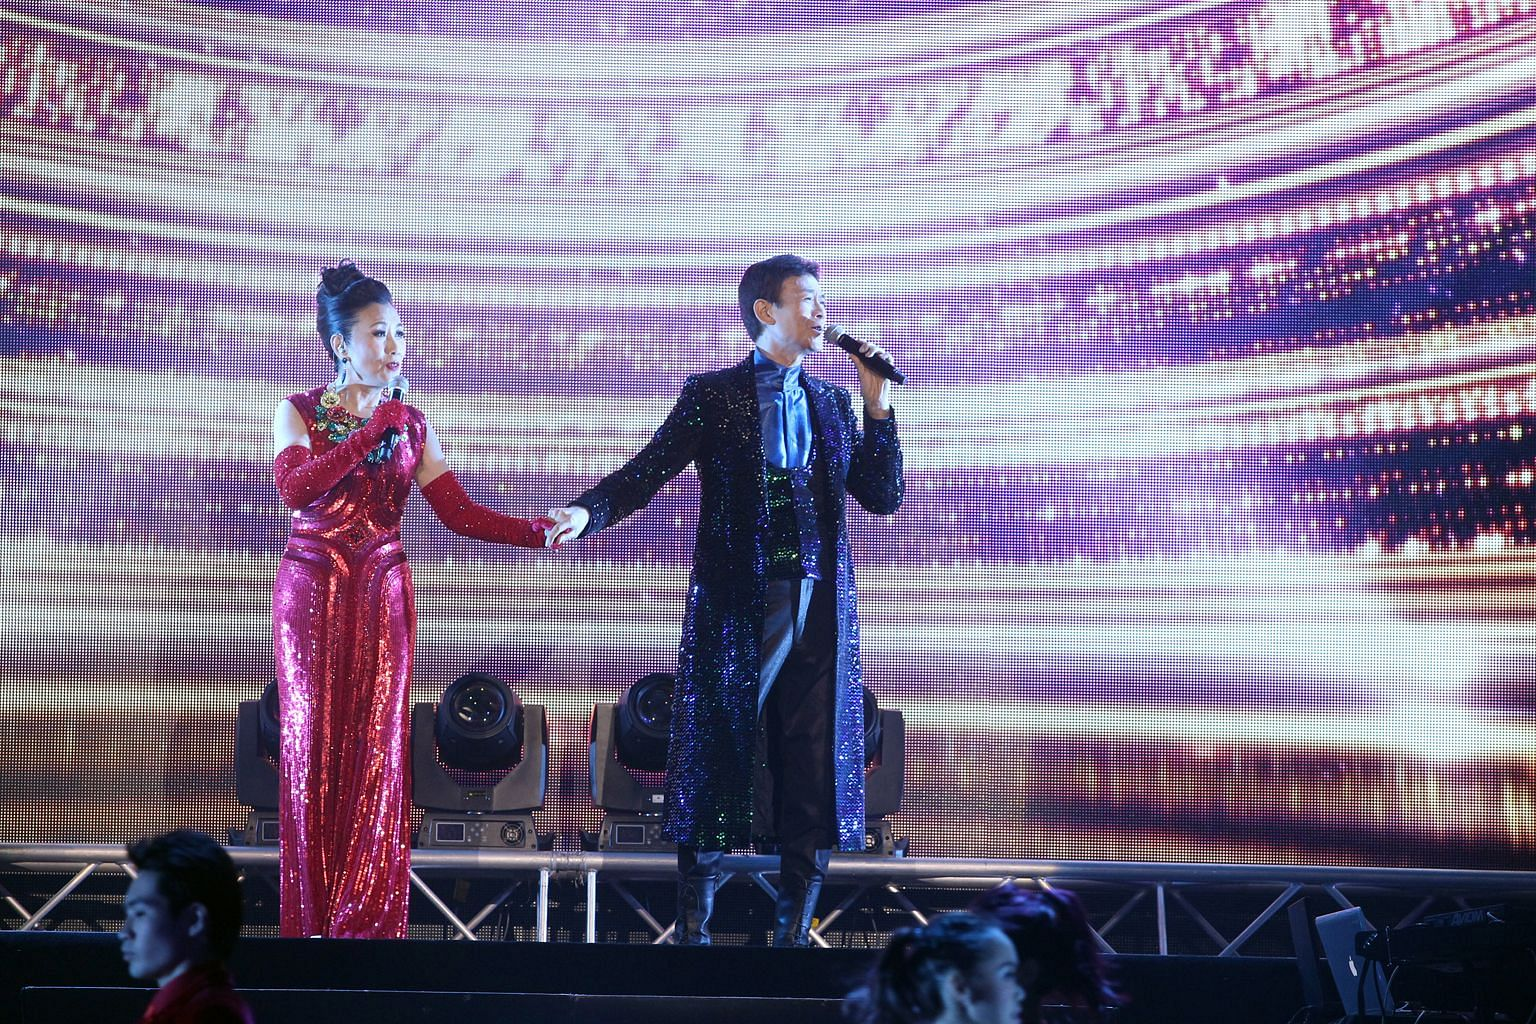 Liza Wang will be performing with Adam Cheng at a concert here next month.